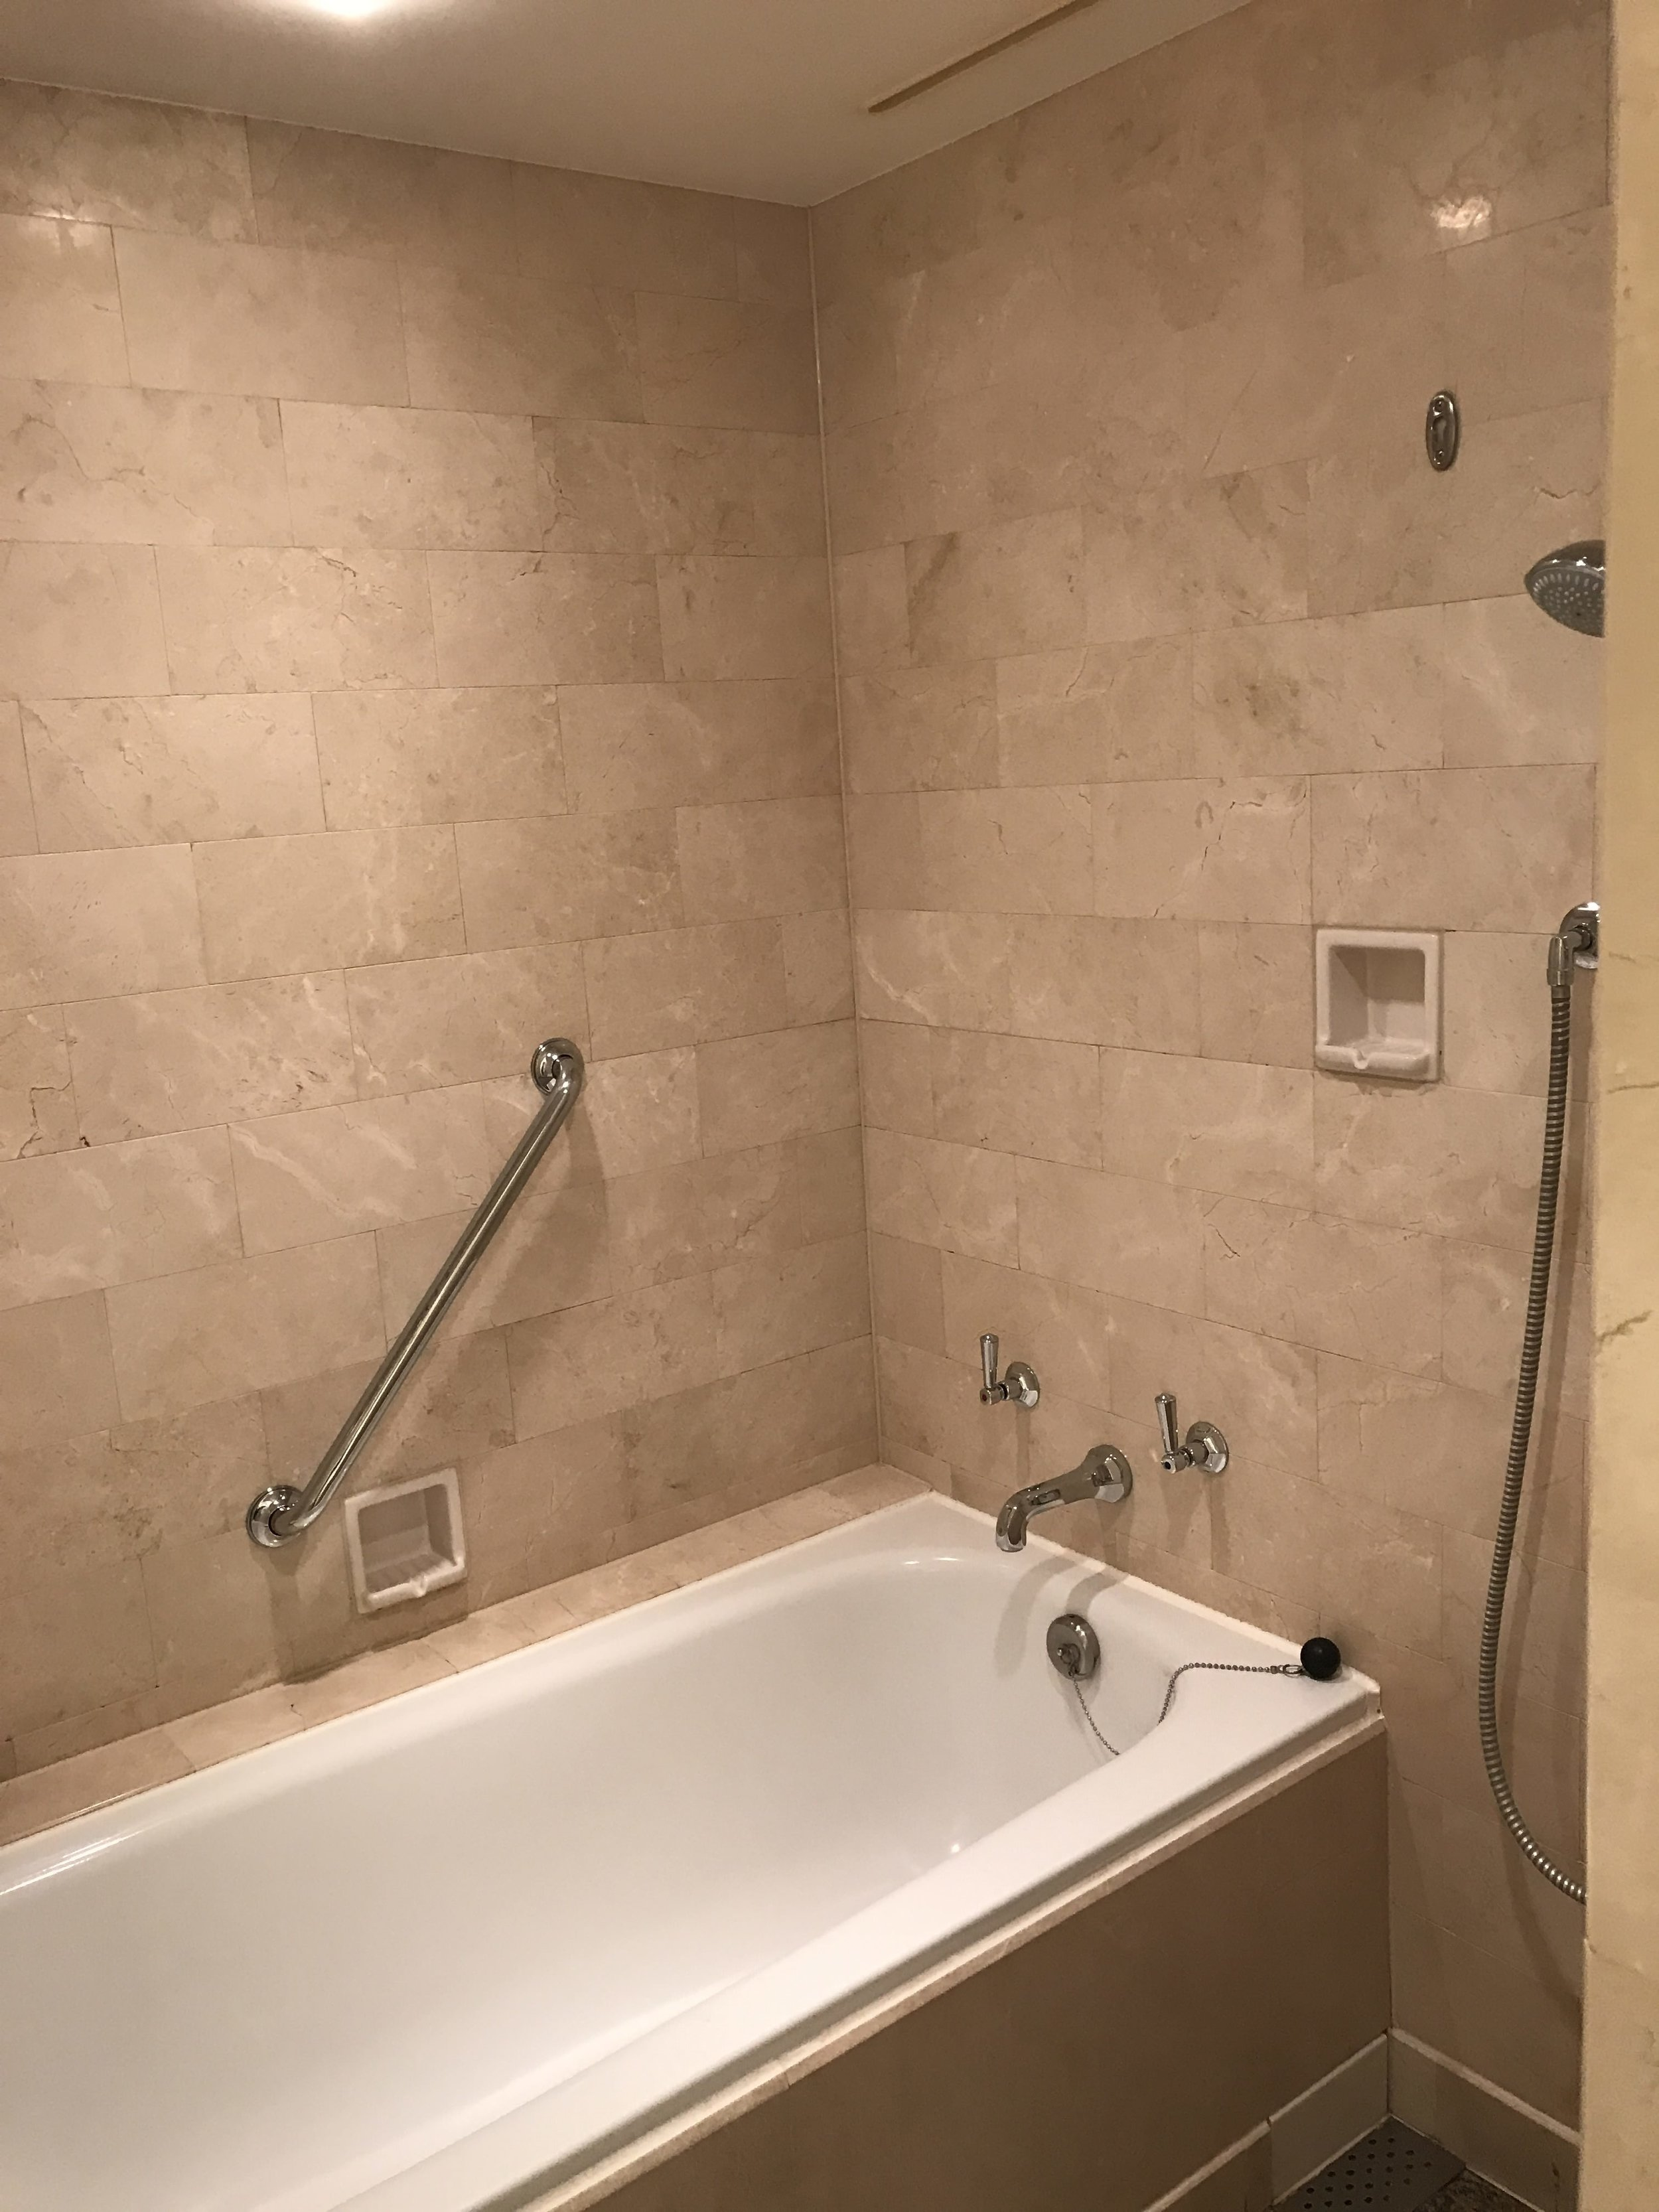 Tub without curtain. Didn't get a picture of the separate shower